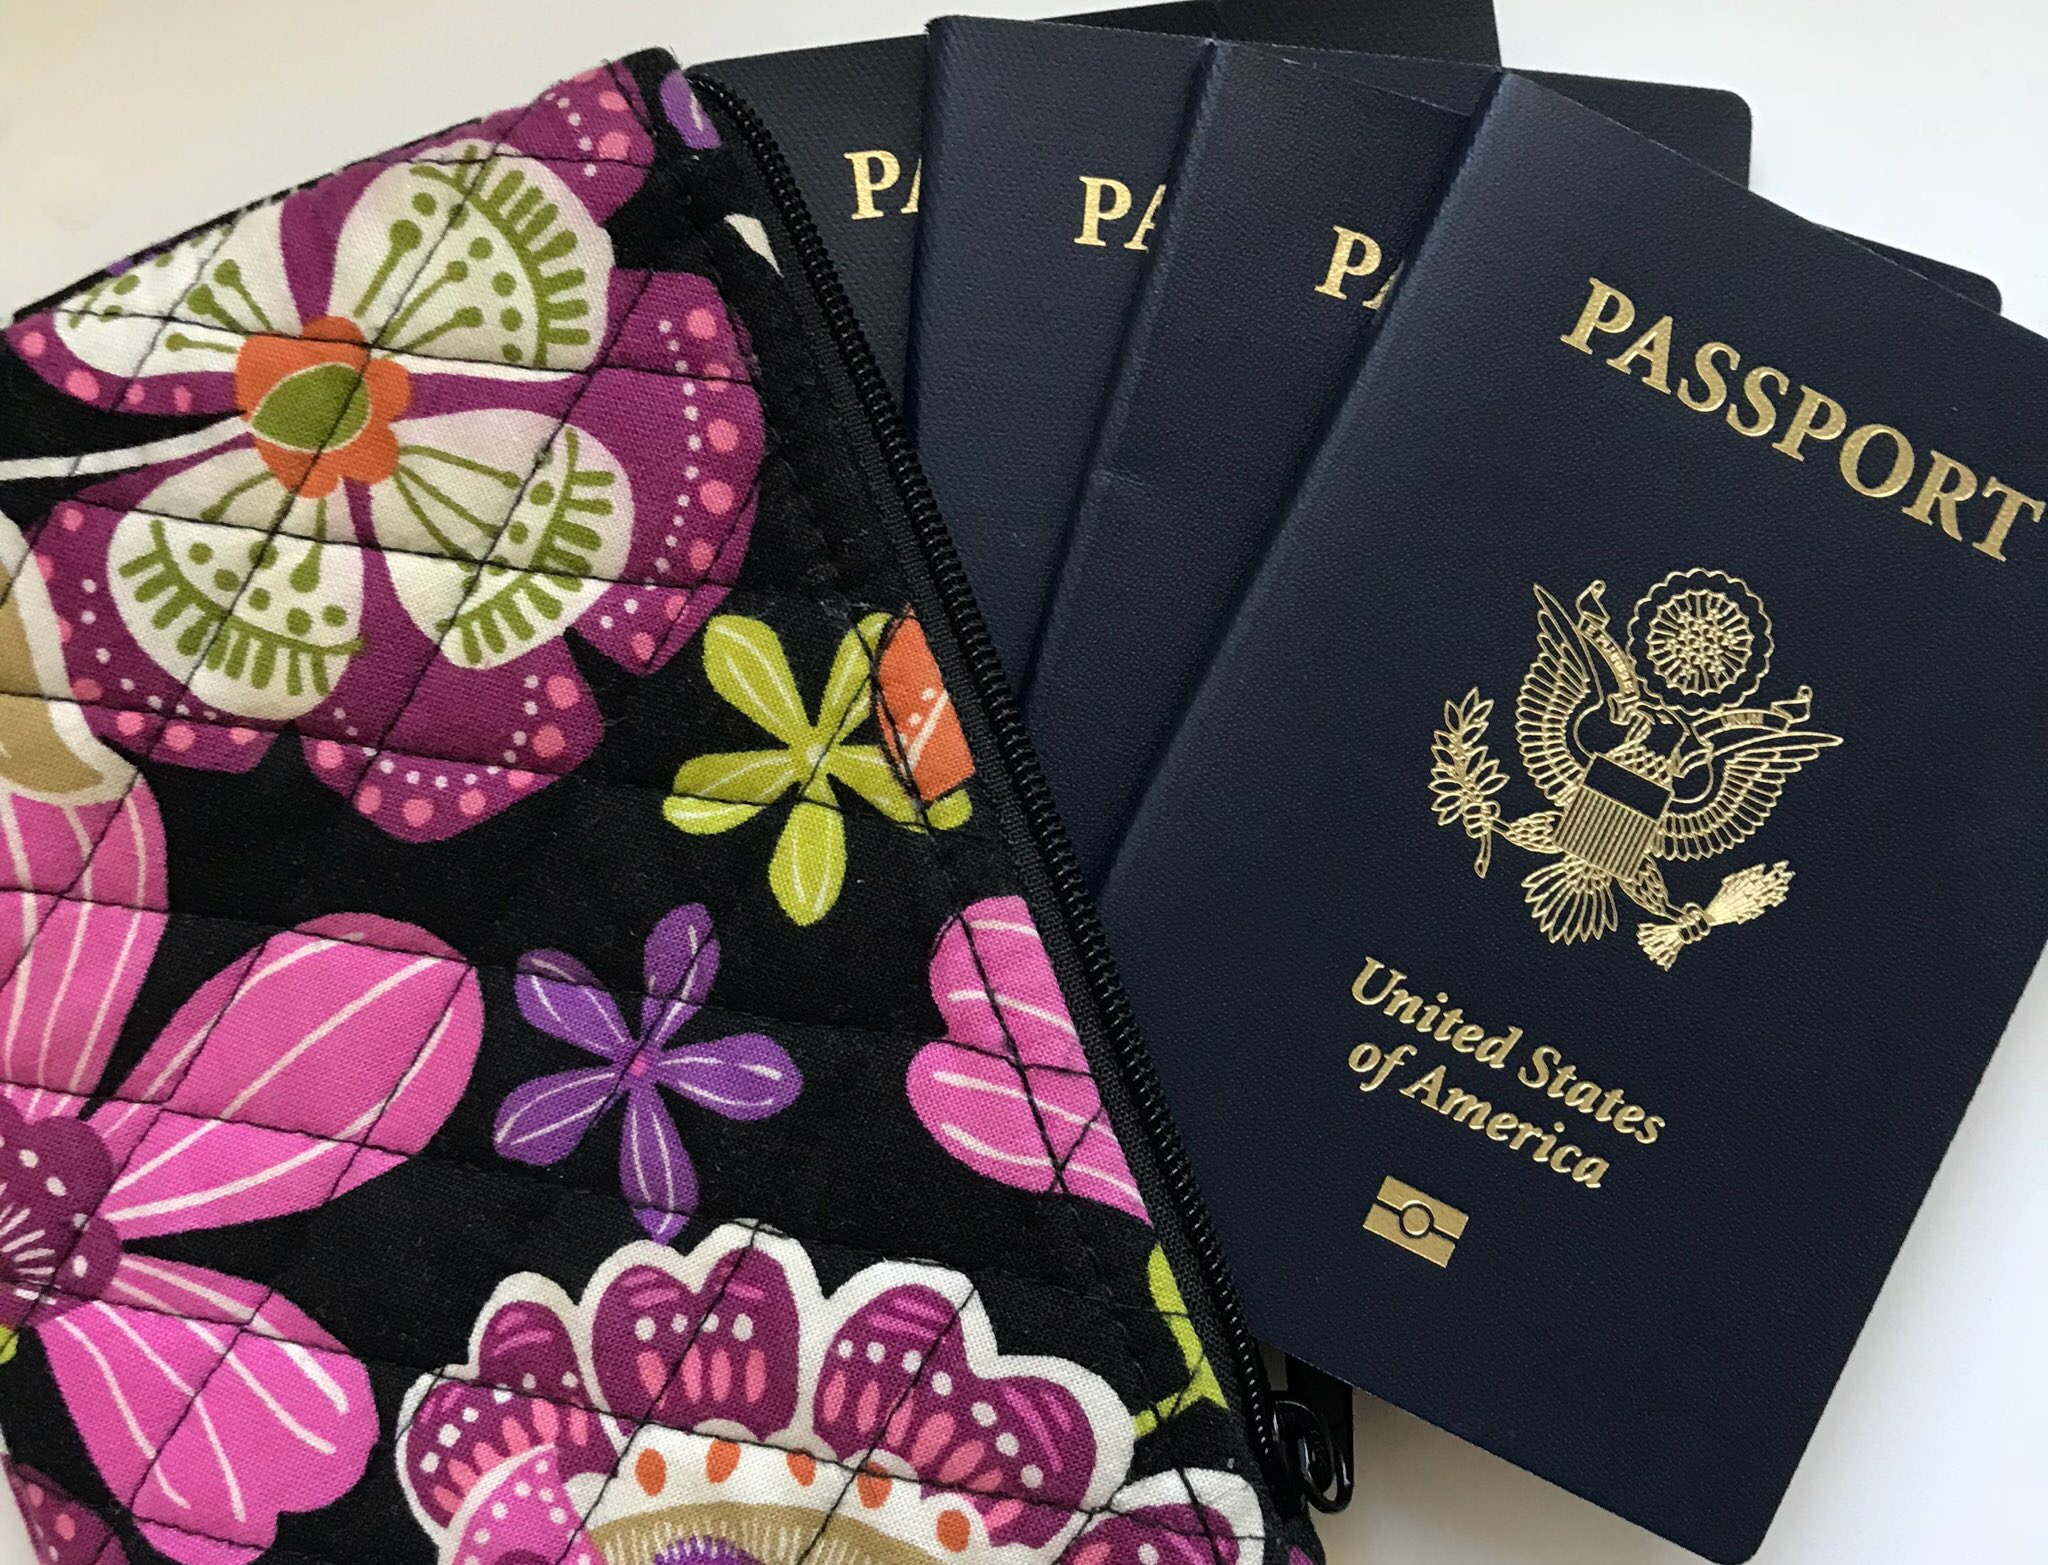 I use this little Vera Bradley zipper bag to stow the 4 passports together.